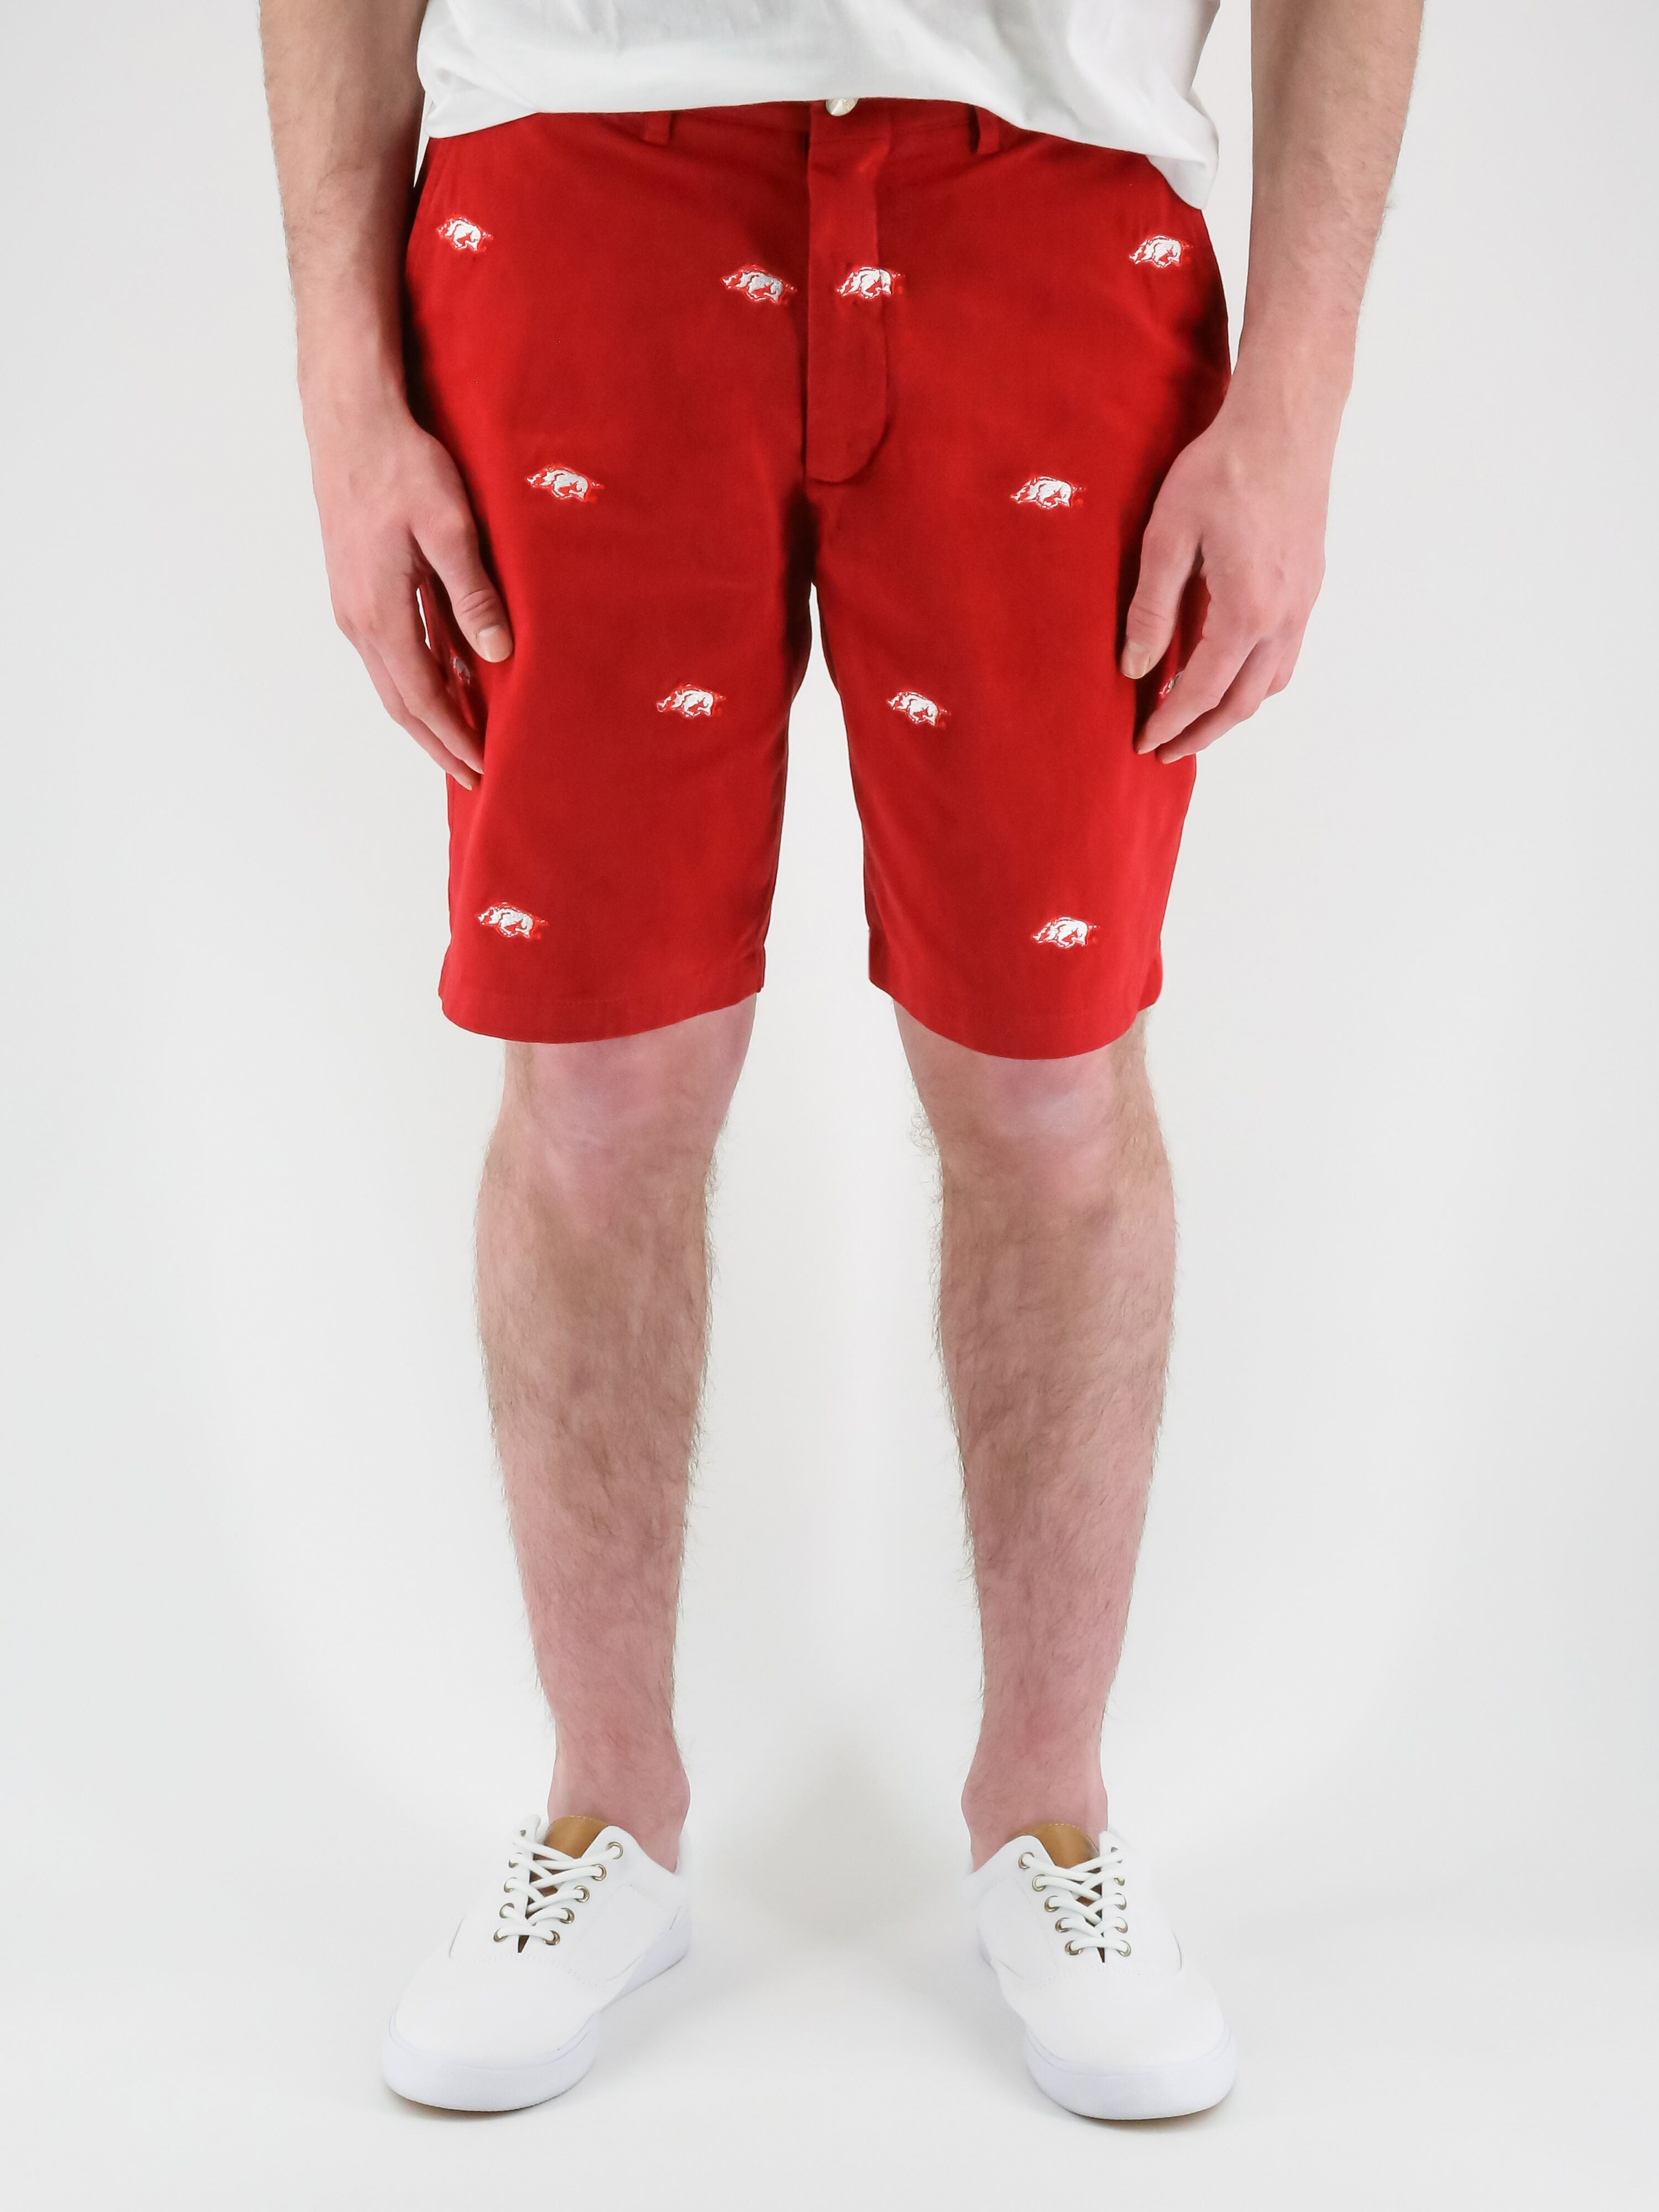 Arkansas Razorback Red Shorts